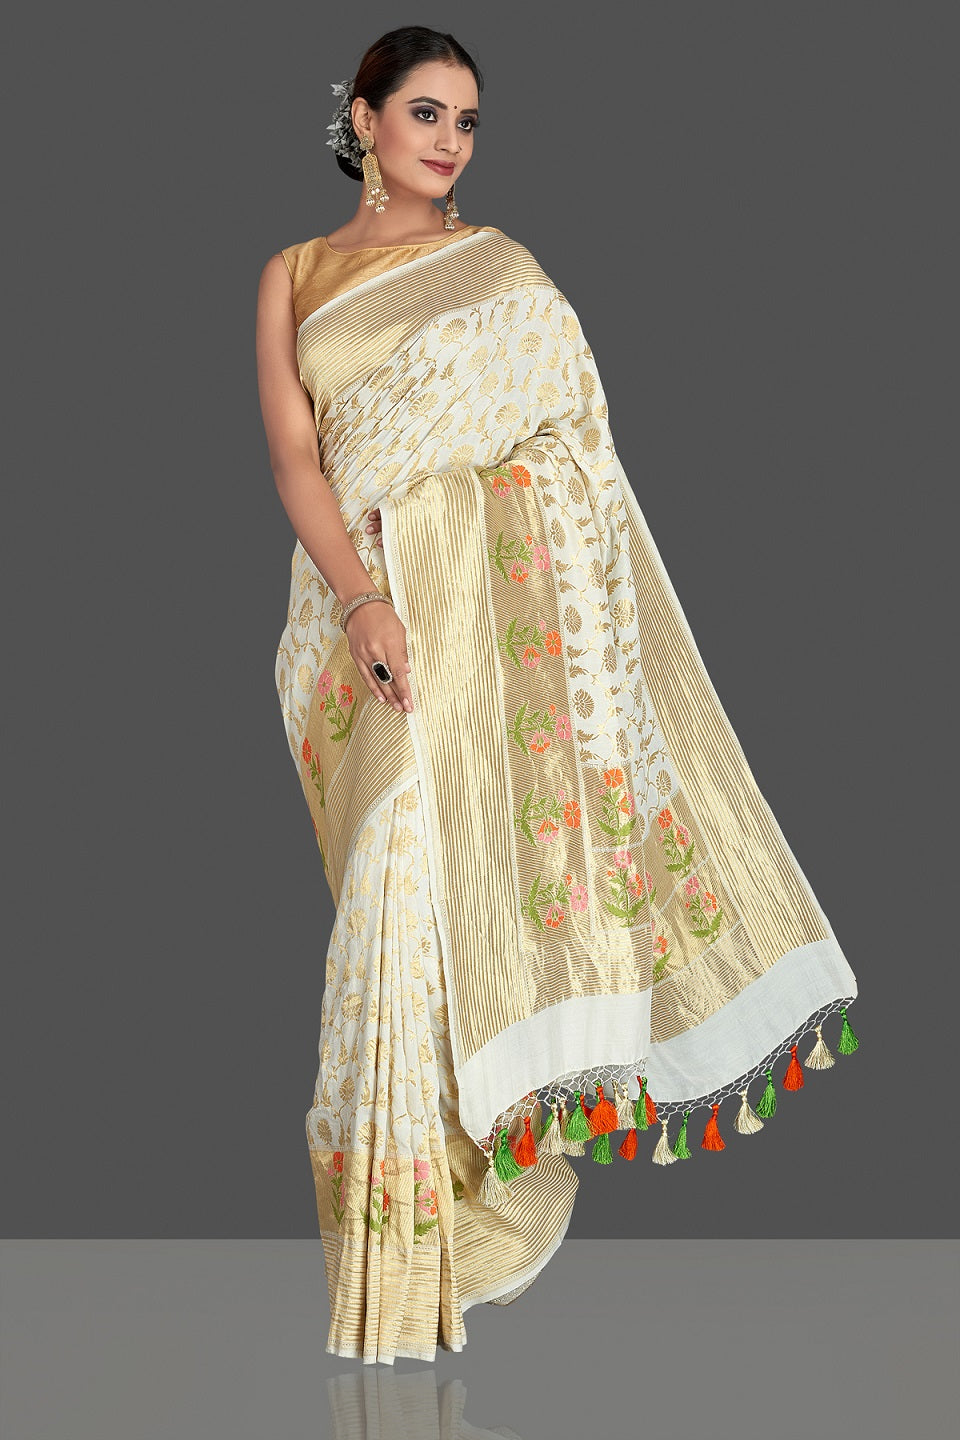 Buy beautiful off-white georgette Banarasi saree online in USA with zari minakari buta on golden zari border. Elevate your traditional style with beautiful Banarasi sarees, designer sarees, pure silk sarees, handwoven saris from Pure Elegance Indian saree store in USA.-full view